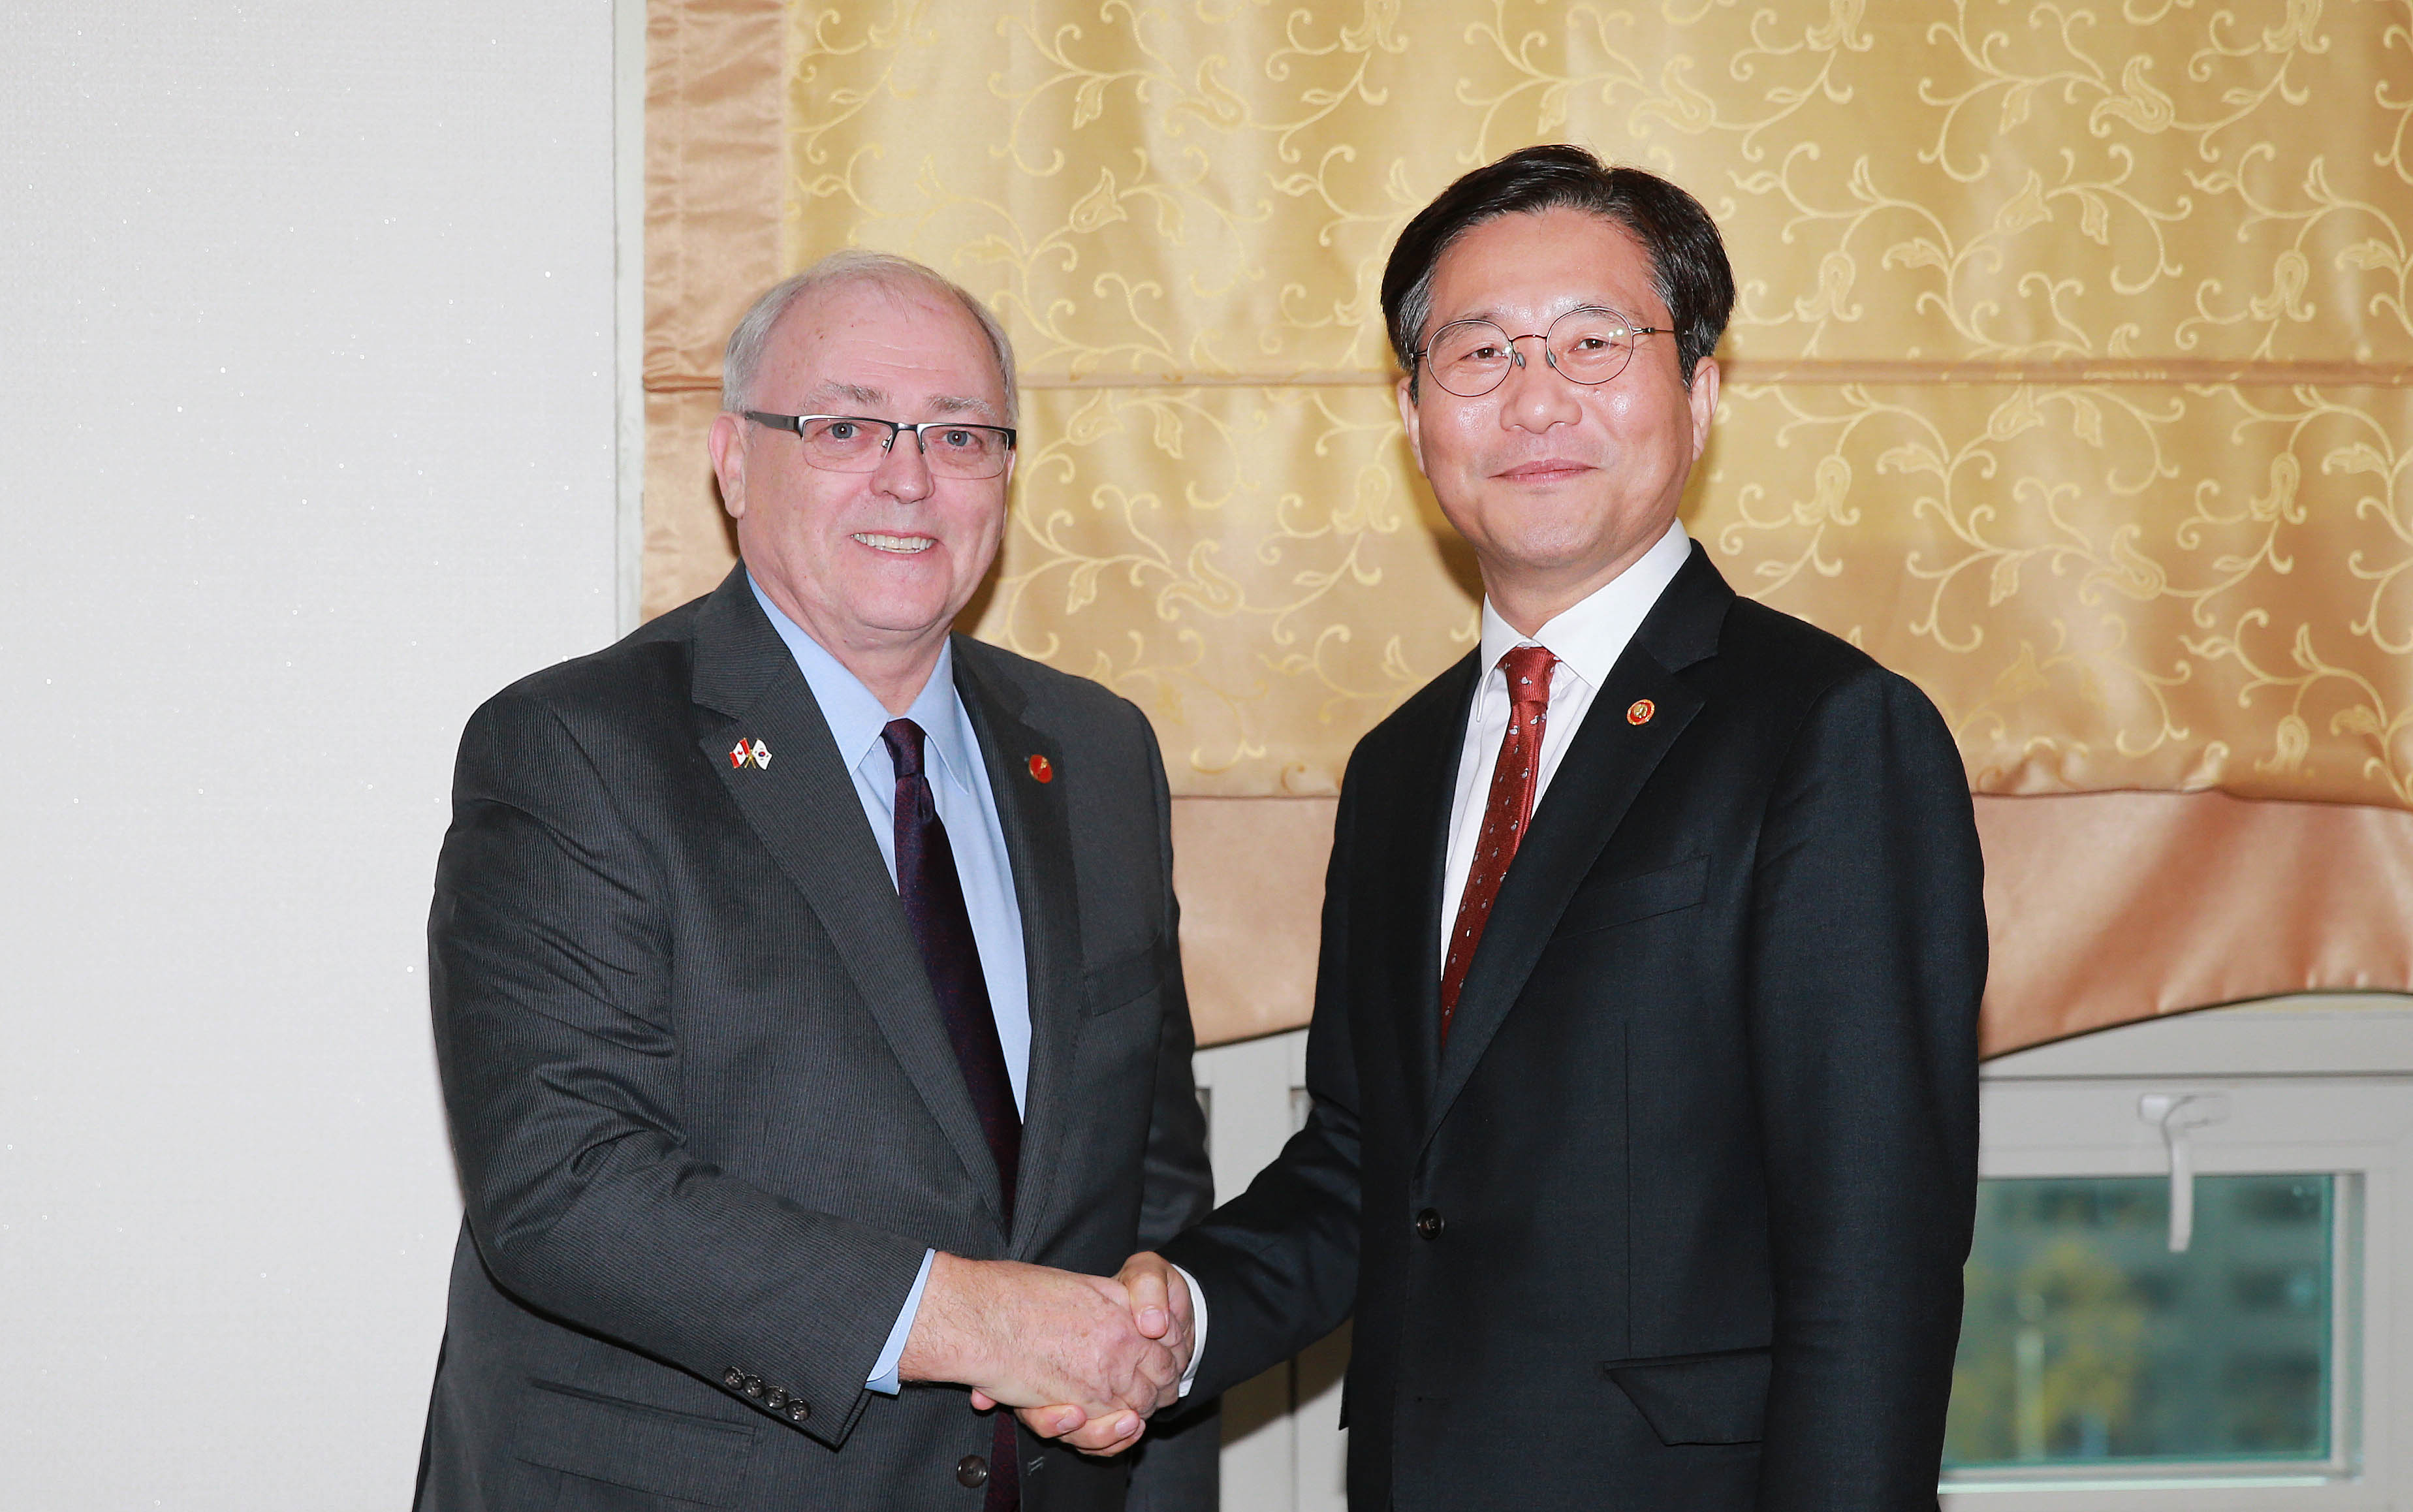 Minister Sung meets with Canadian Senate Speaker George Furey